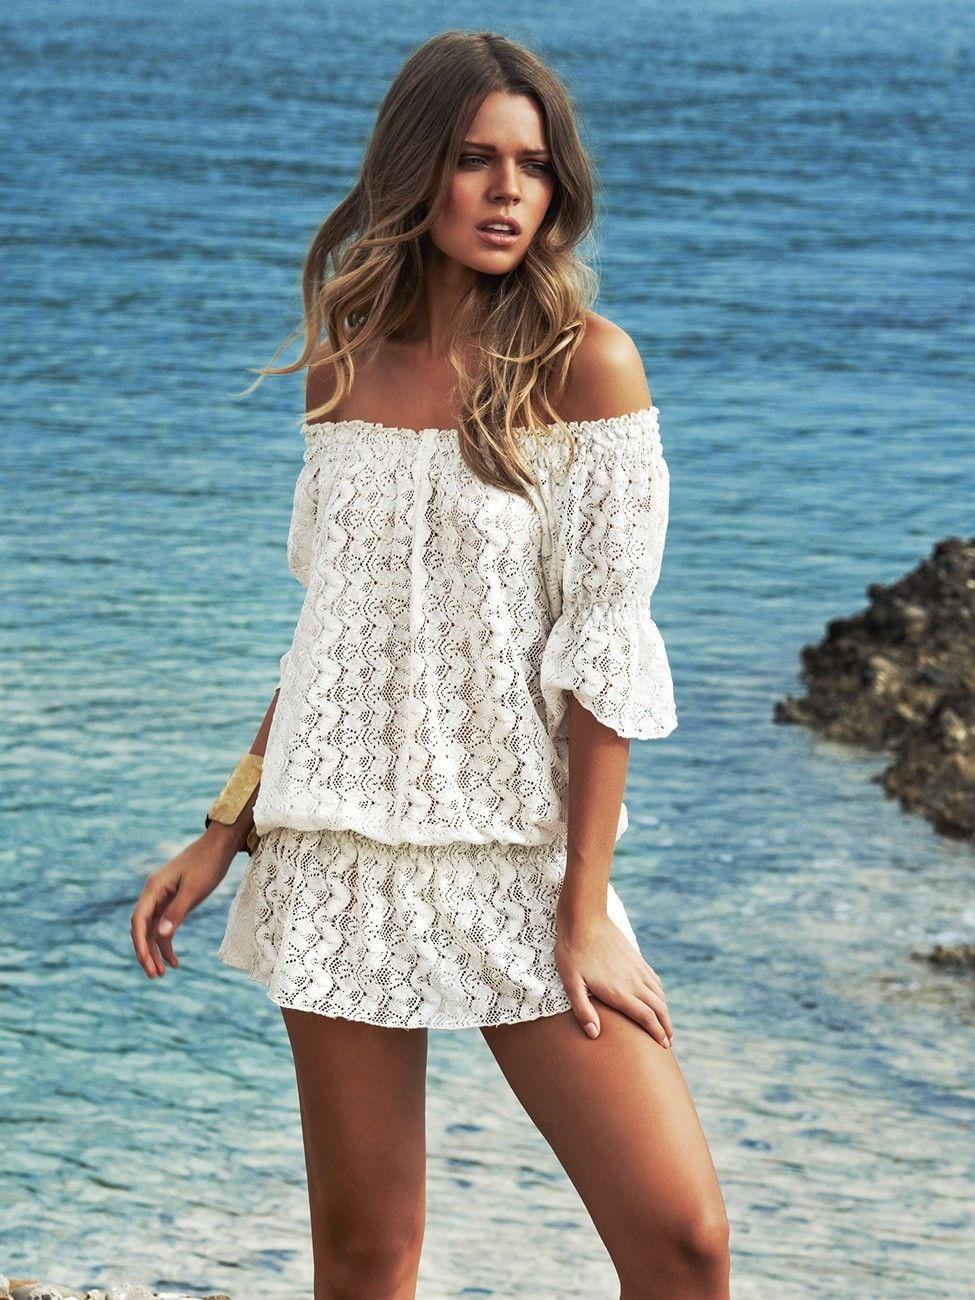 41464dd8c5 Swimwear Cover up 2015     White cover up Melissa Odabash  Nicola cover up